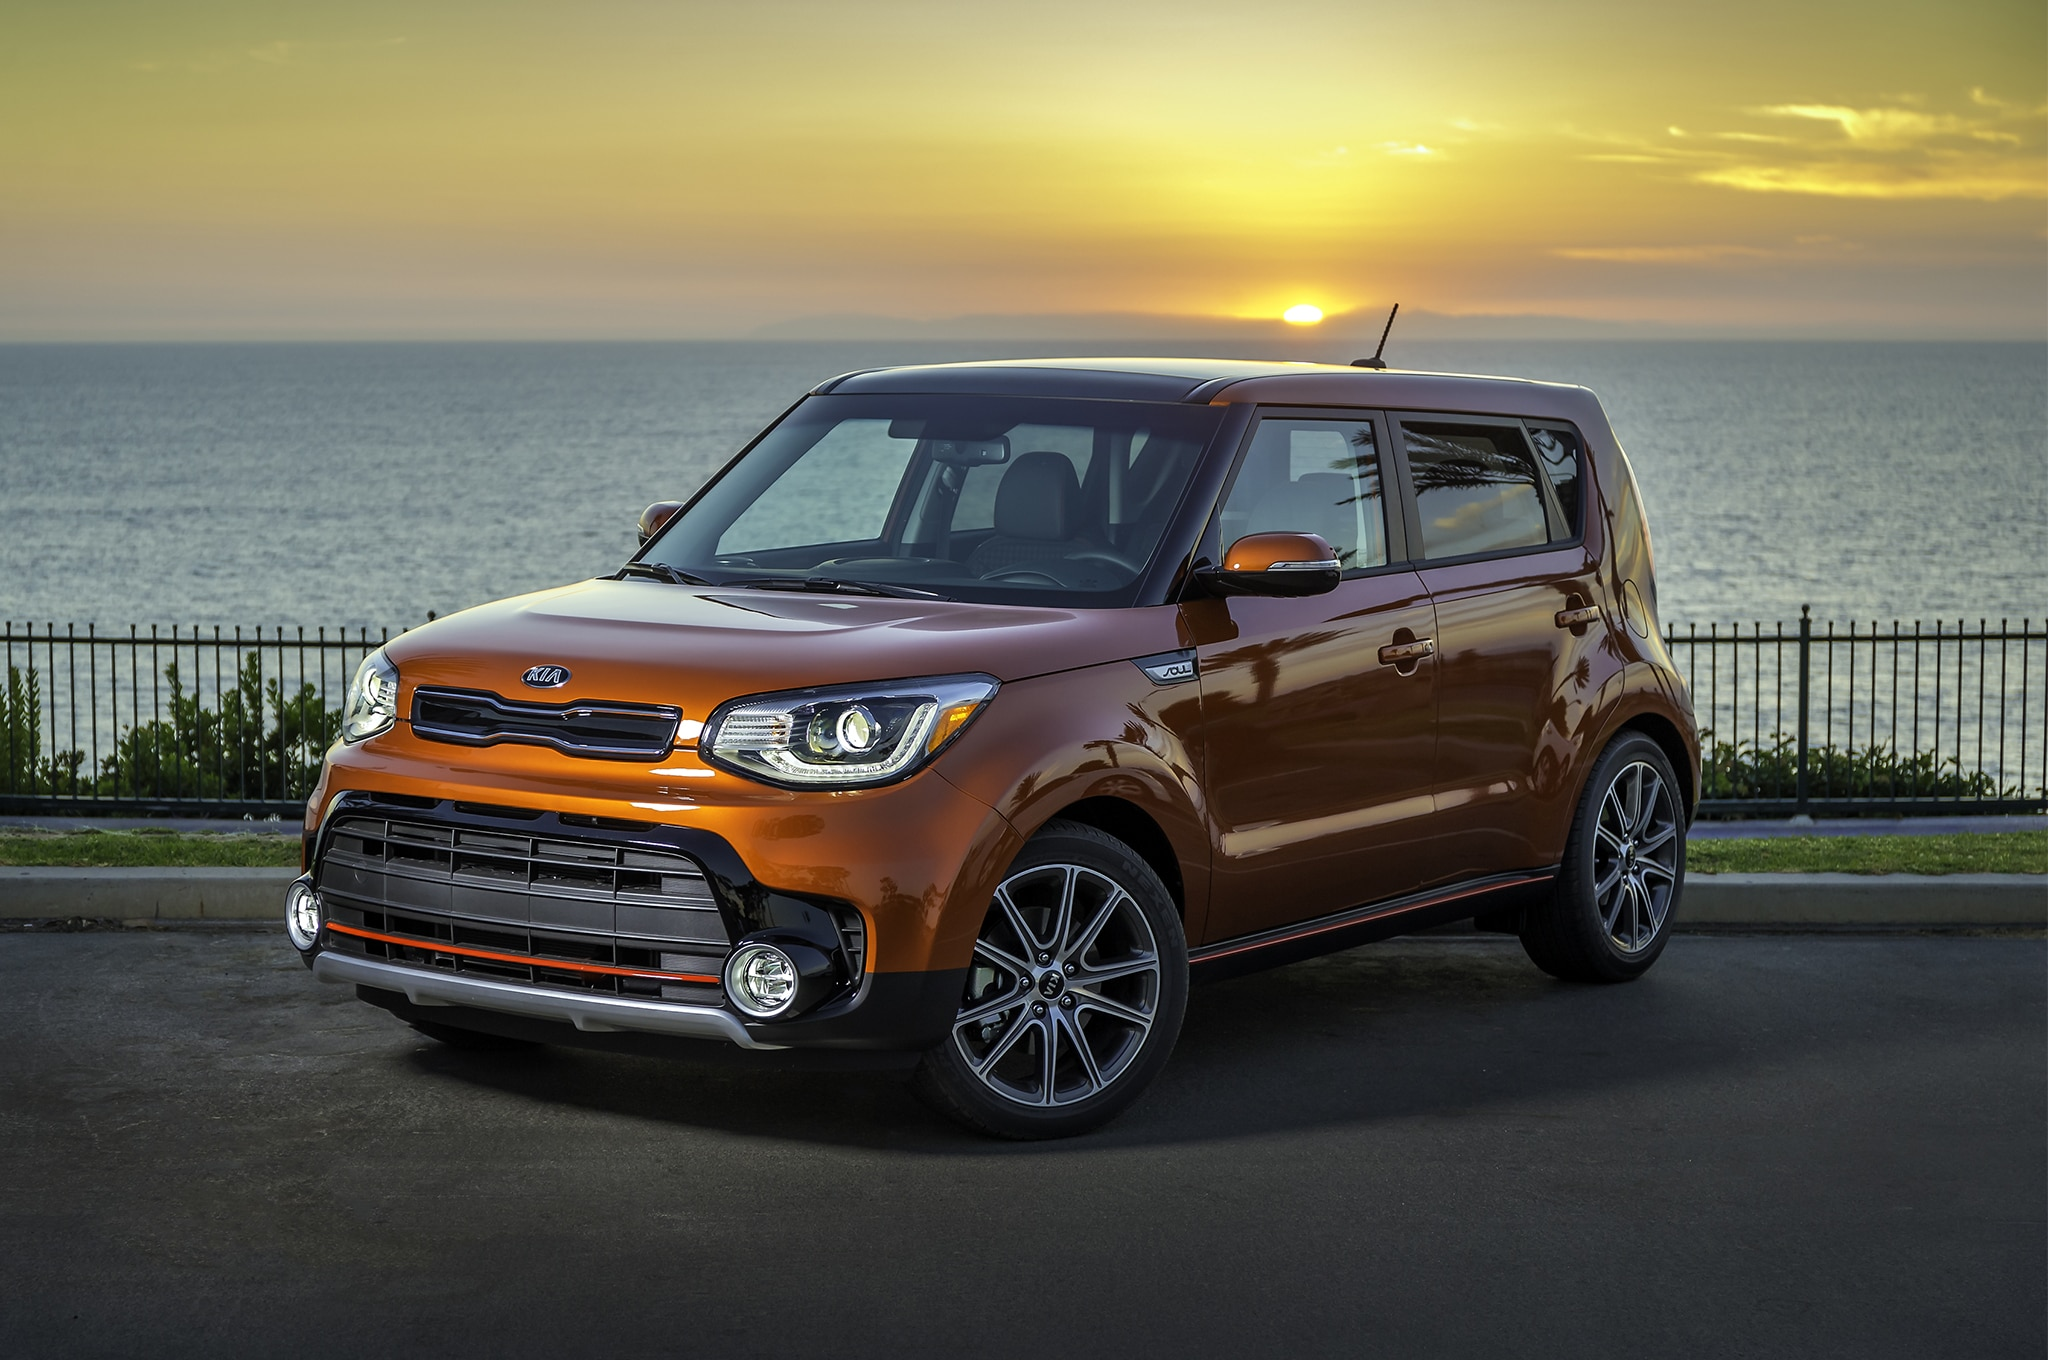 2017 Kia Soul Turbo front three quarter in motion 02